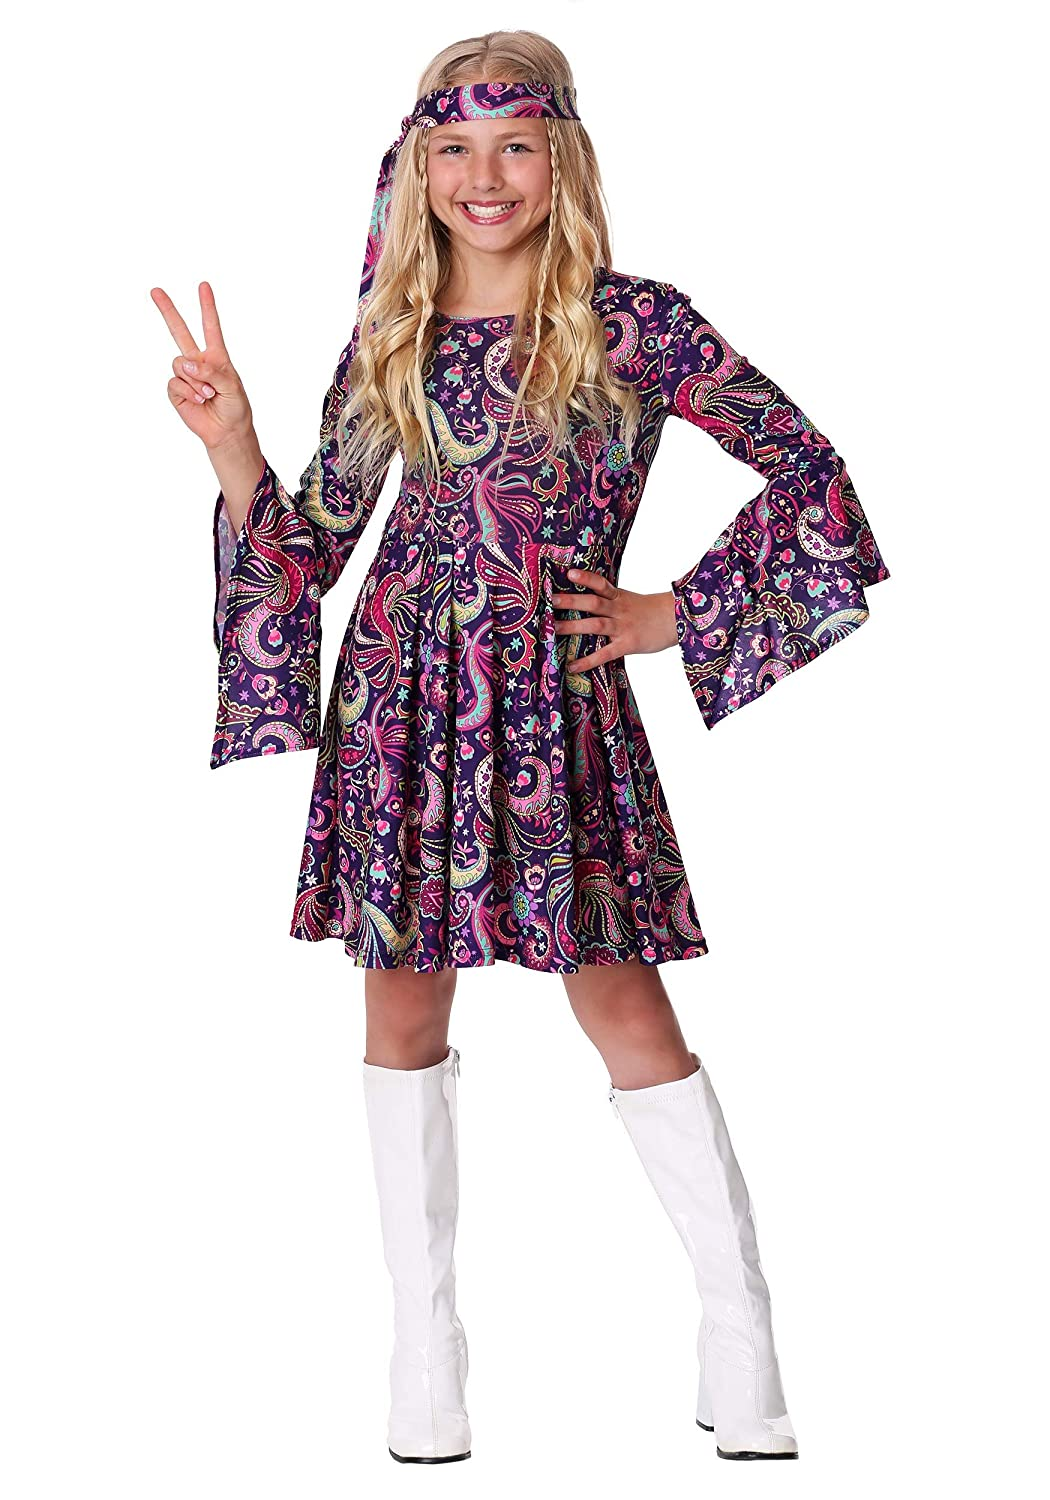 60s 70s Kids Costumes & Clothing Girls & Boys Girls Woodstock Hippie Costume $19.99 AT vintagedancer.com